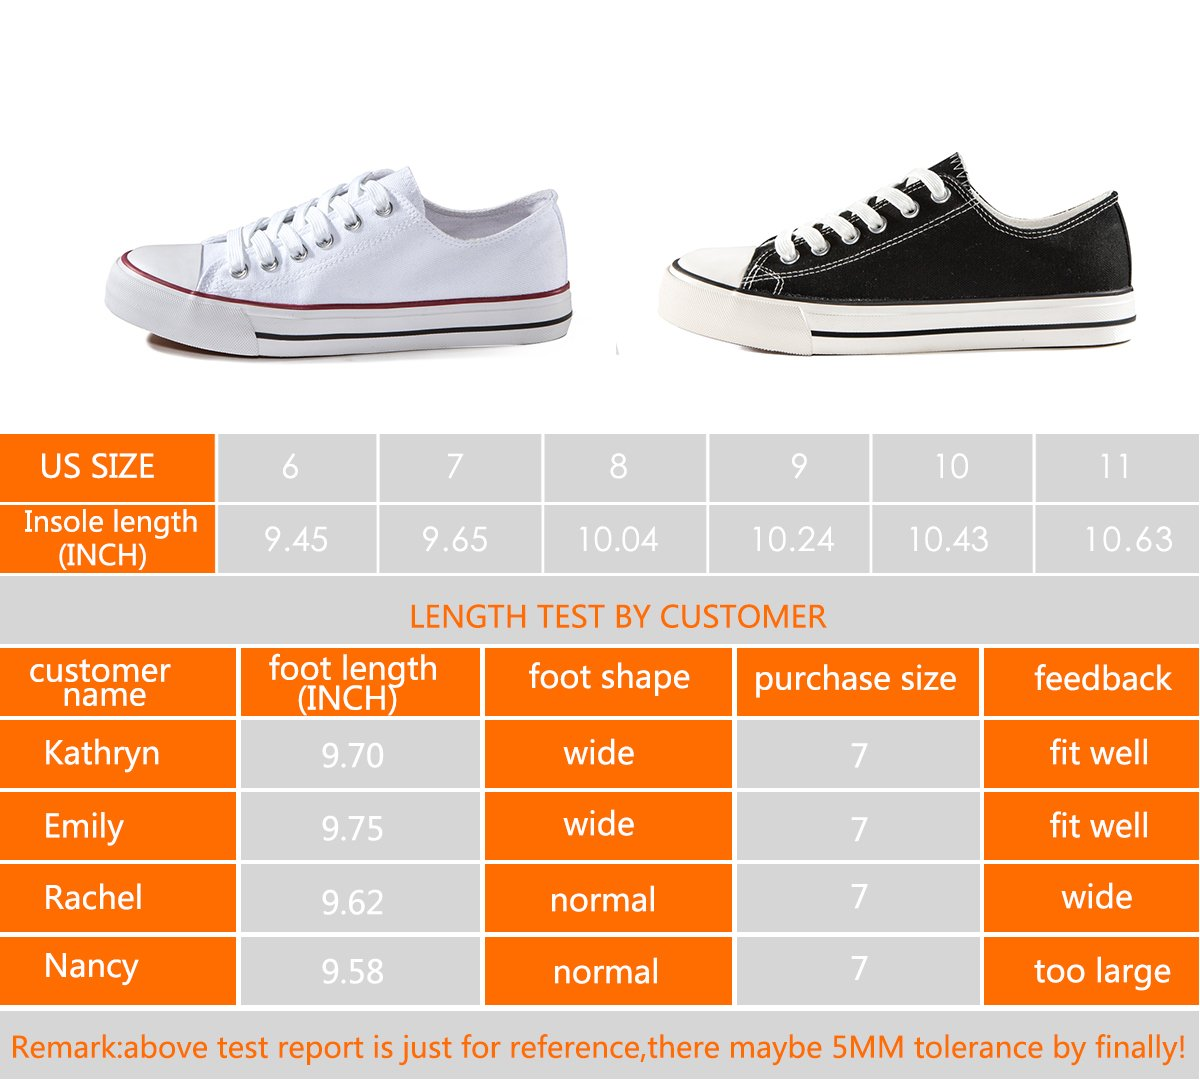 ZGR Canvas Sneaker Low Cut Season Lace Ups Shoes Casual Trainers for Women and Teenager Black US9 by ZGR (Image #8)